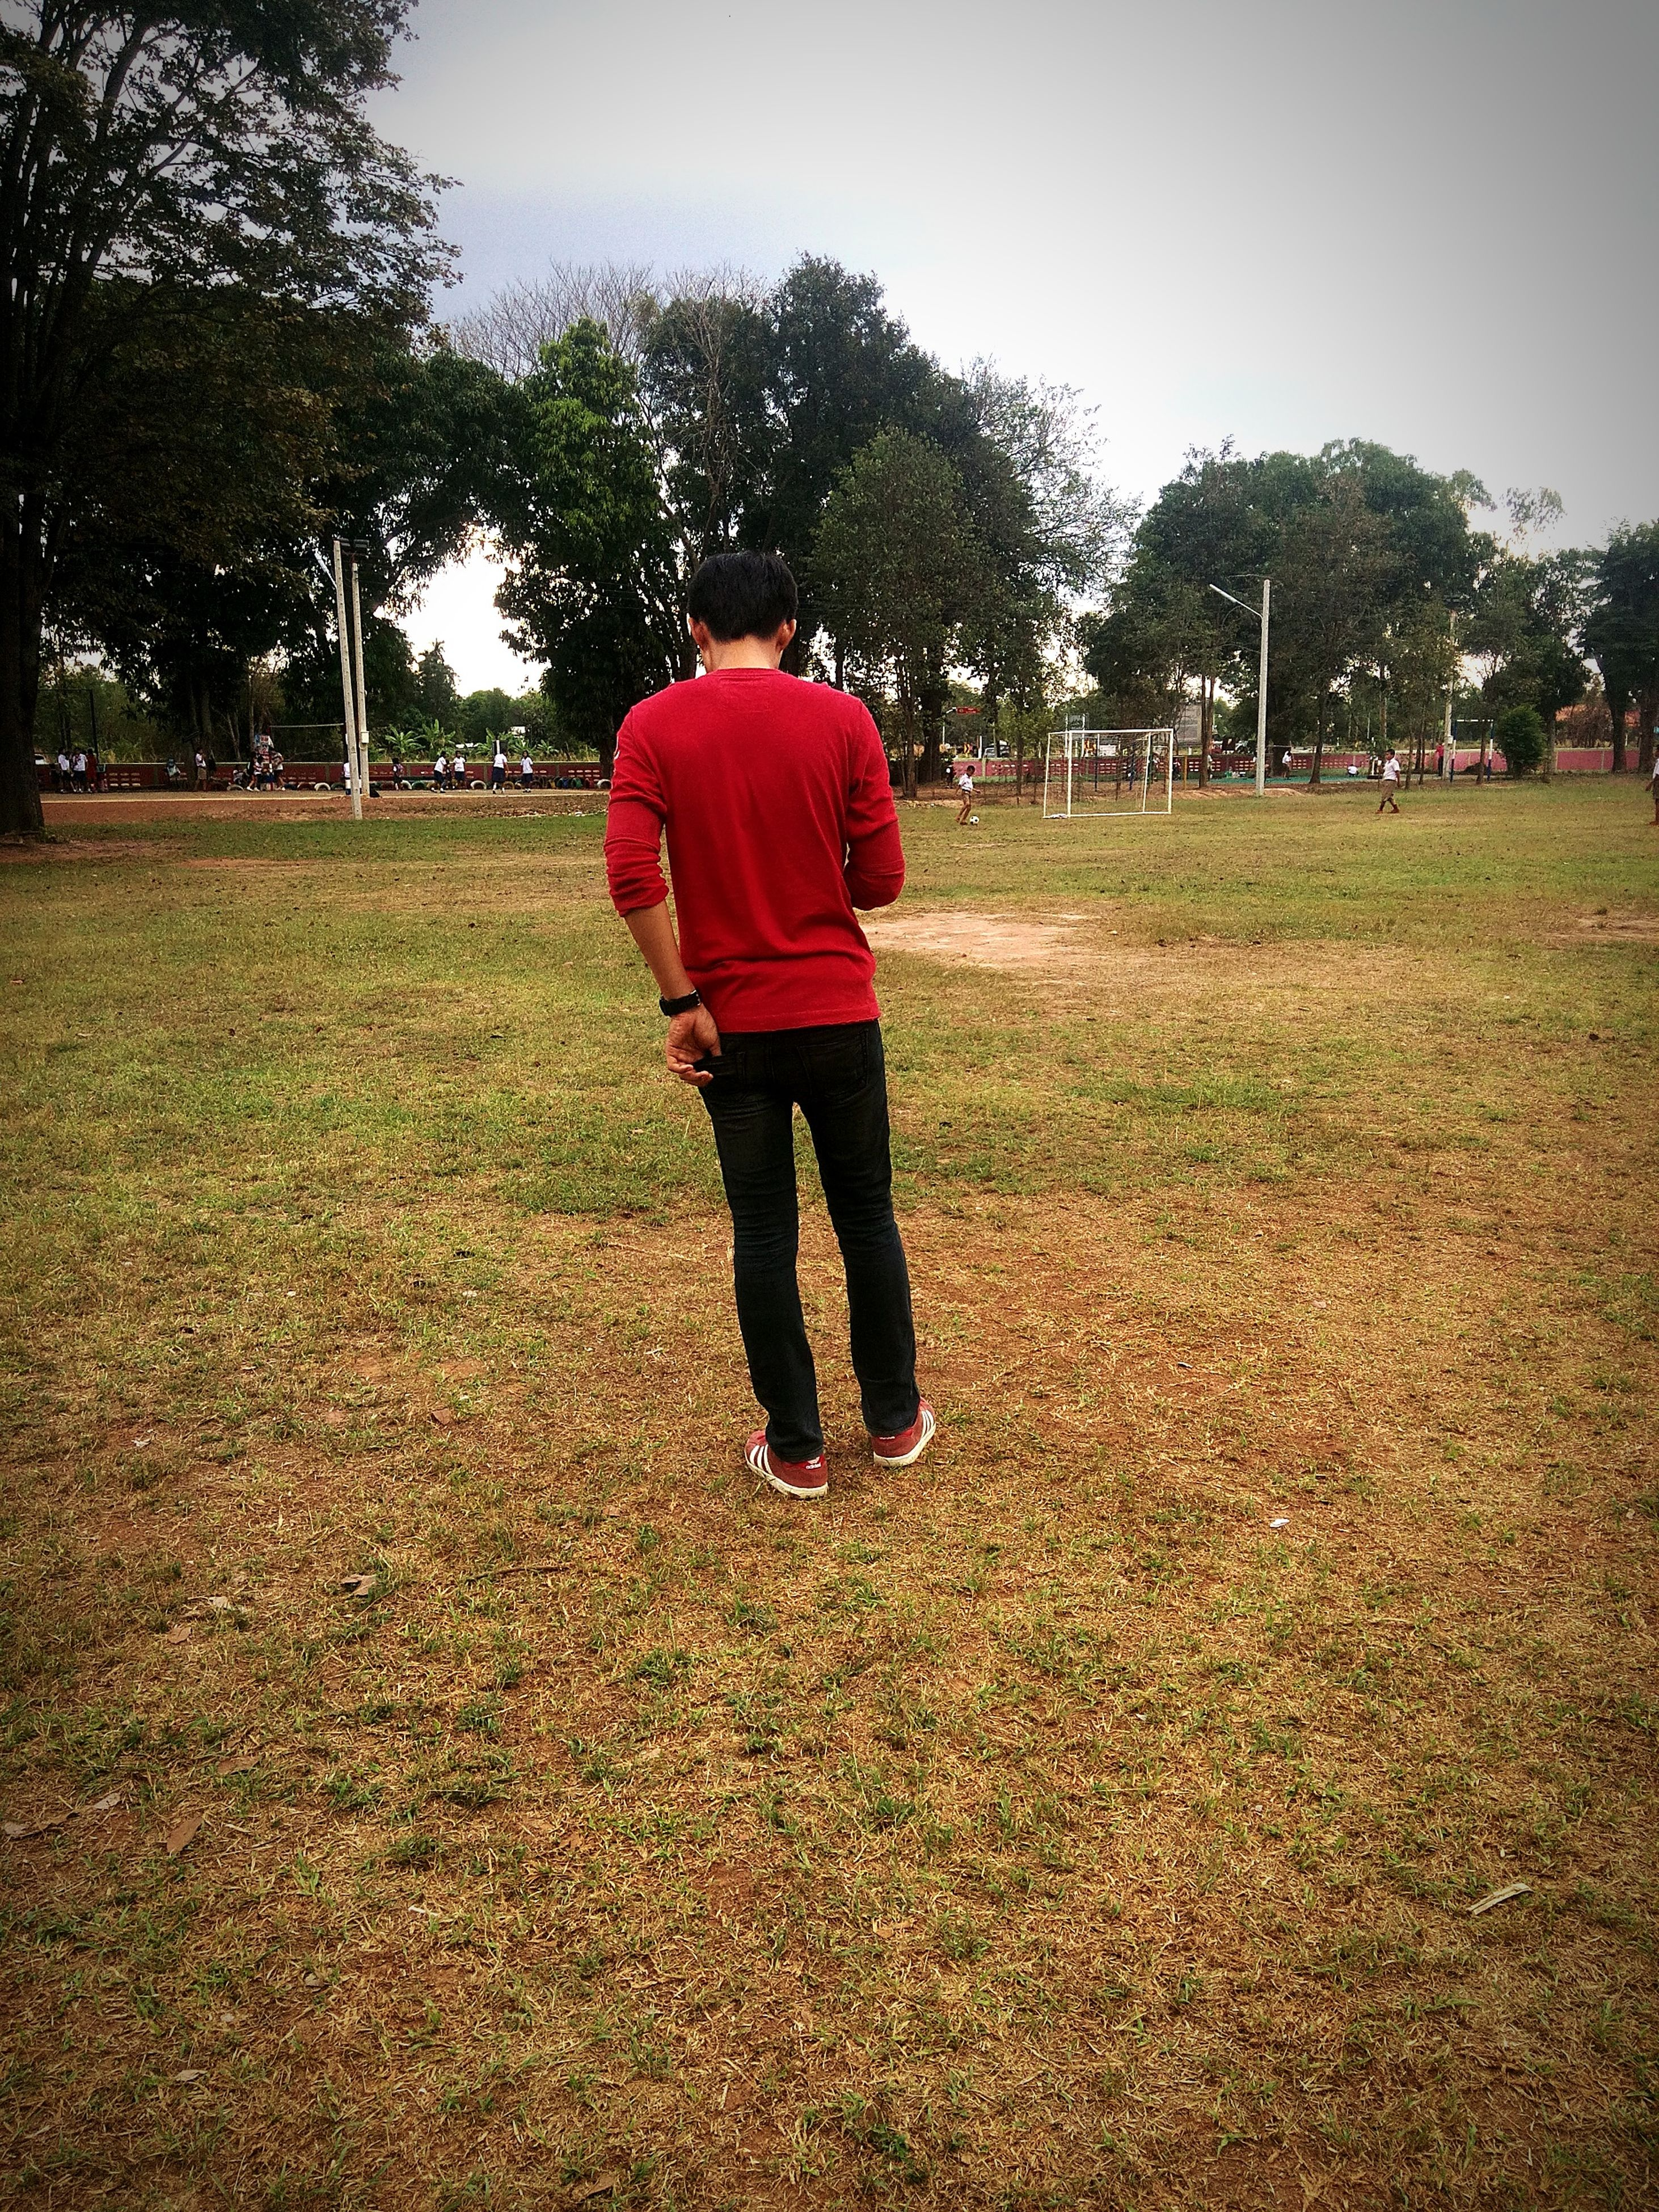 tree, full length, grass, lifestyles, leisure activity, rear view, casual clothing, childhood, field, standing, walking, grassy, tranquility, day, landscape, nature, solitude, park - man made space